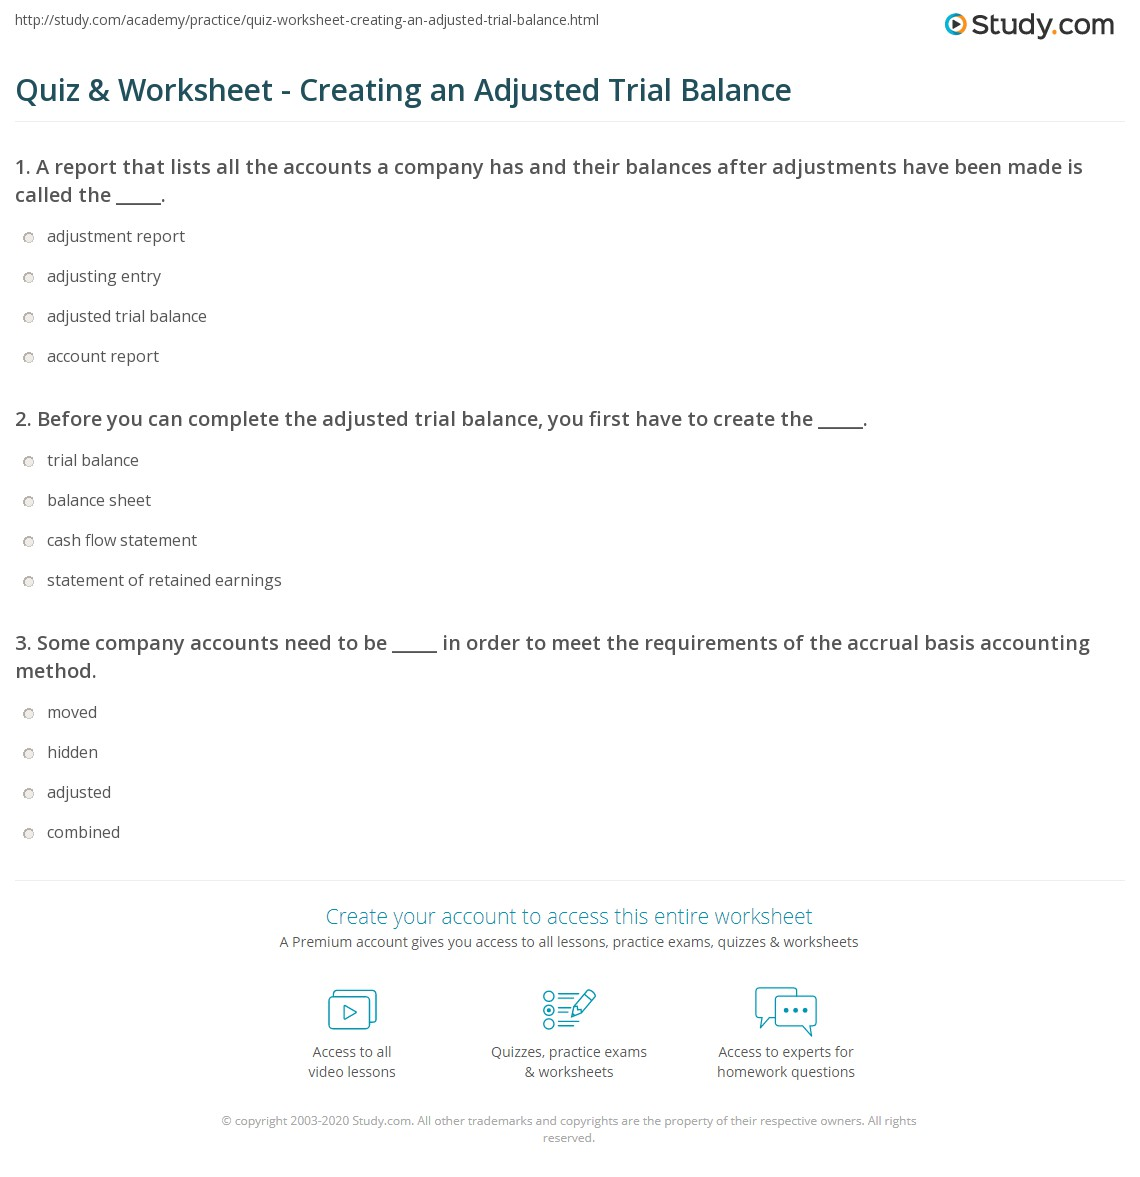 quiz worksheet creating an adjusted trial balance. Black Bedroom Furniture Sets. Home Design Ideas